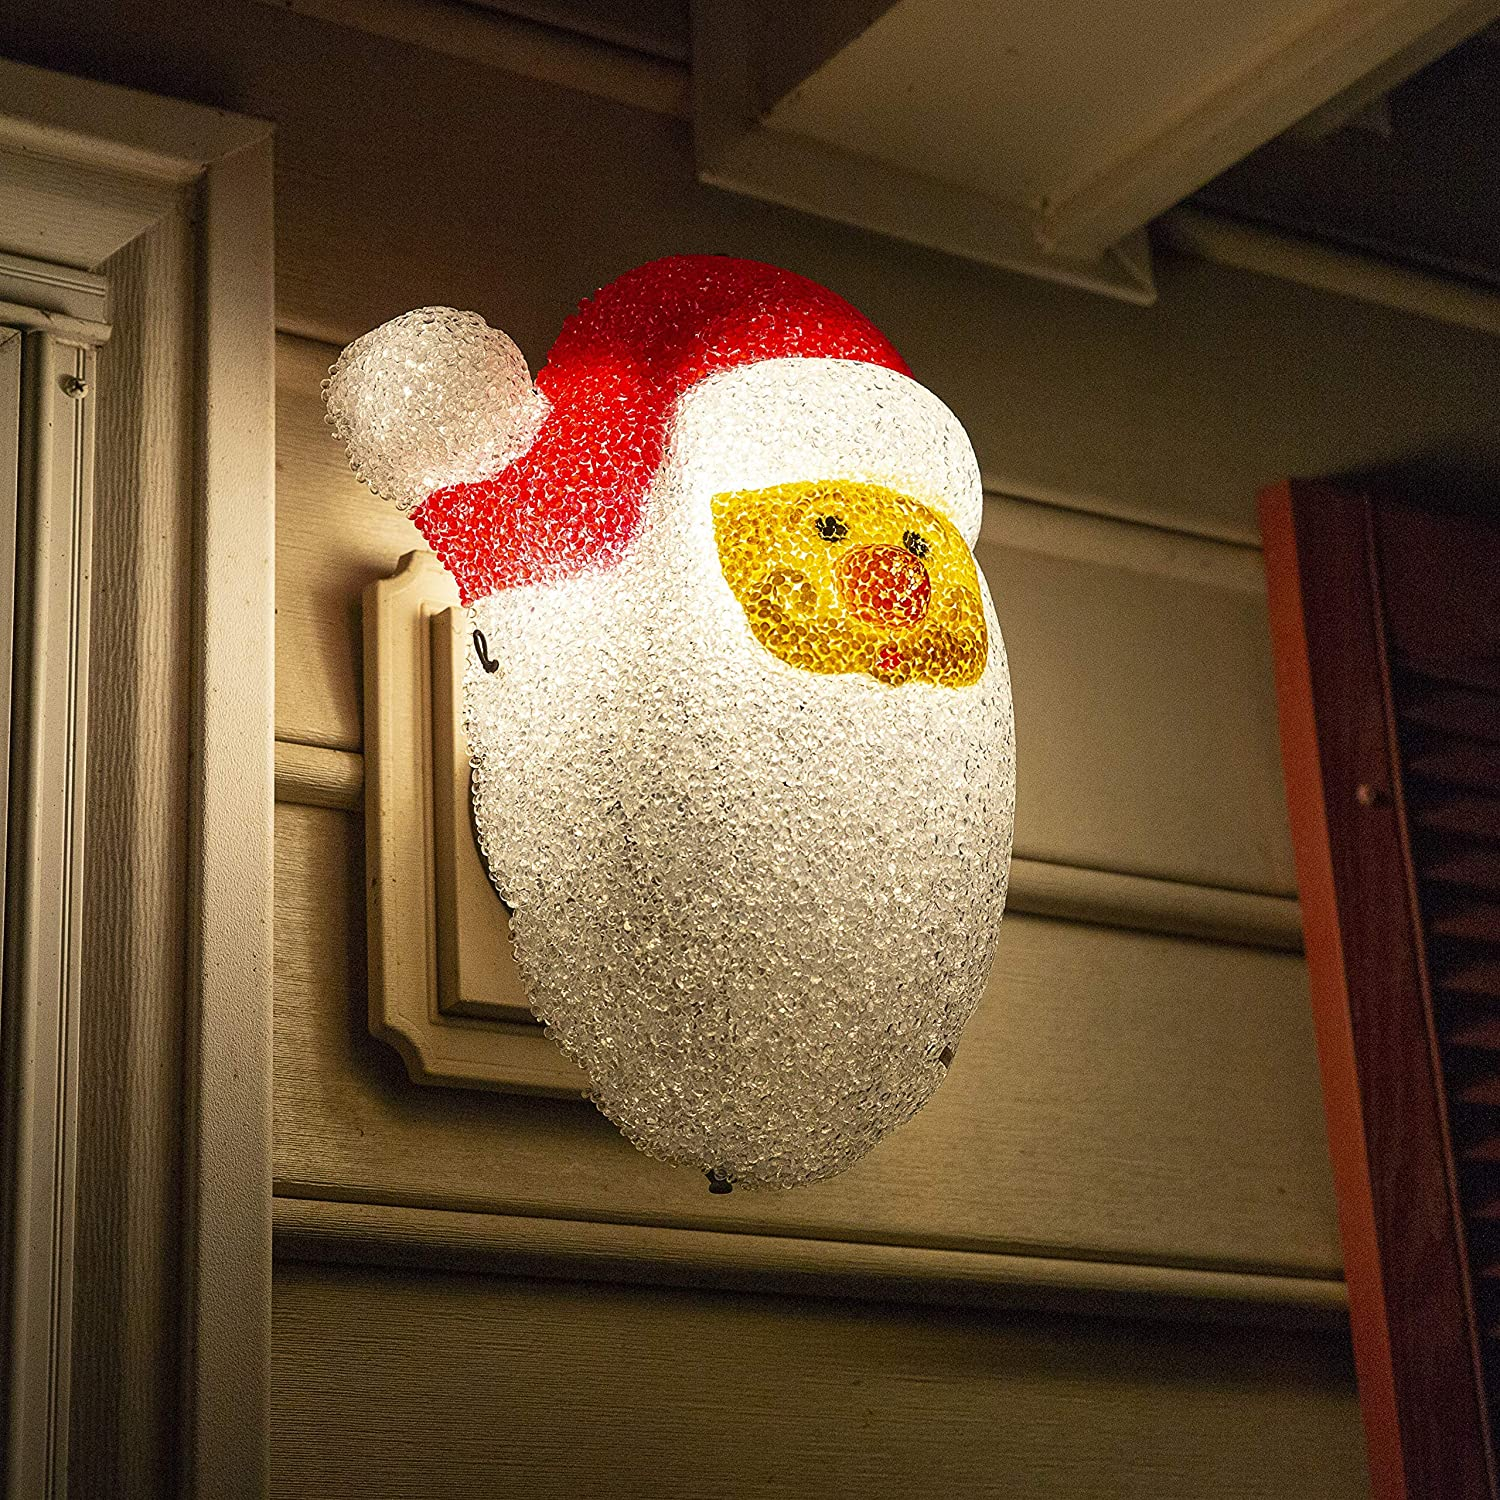 Besti Santa Porch Light Cover Holiday and Christmas Decorations | Flexible, Weather-Resistant Acrylic | No Tools or Installation Required | Fits Standard Outdoor Lighting